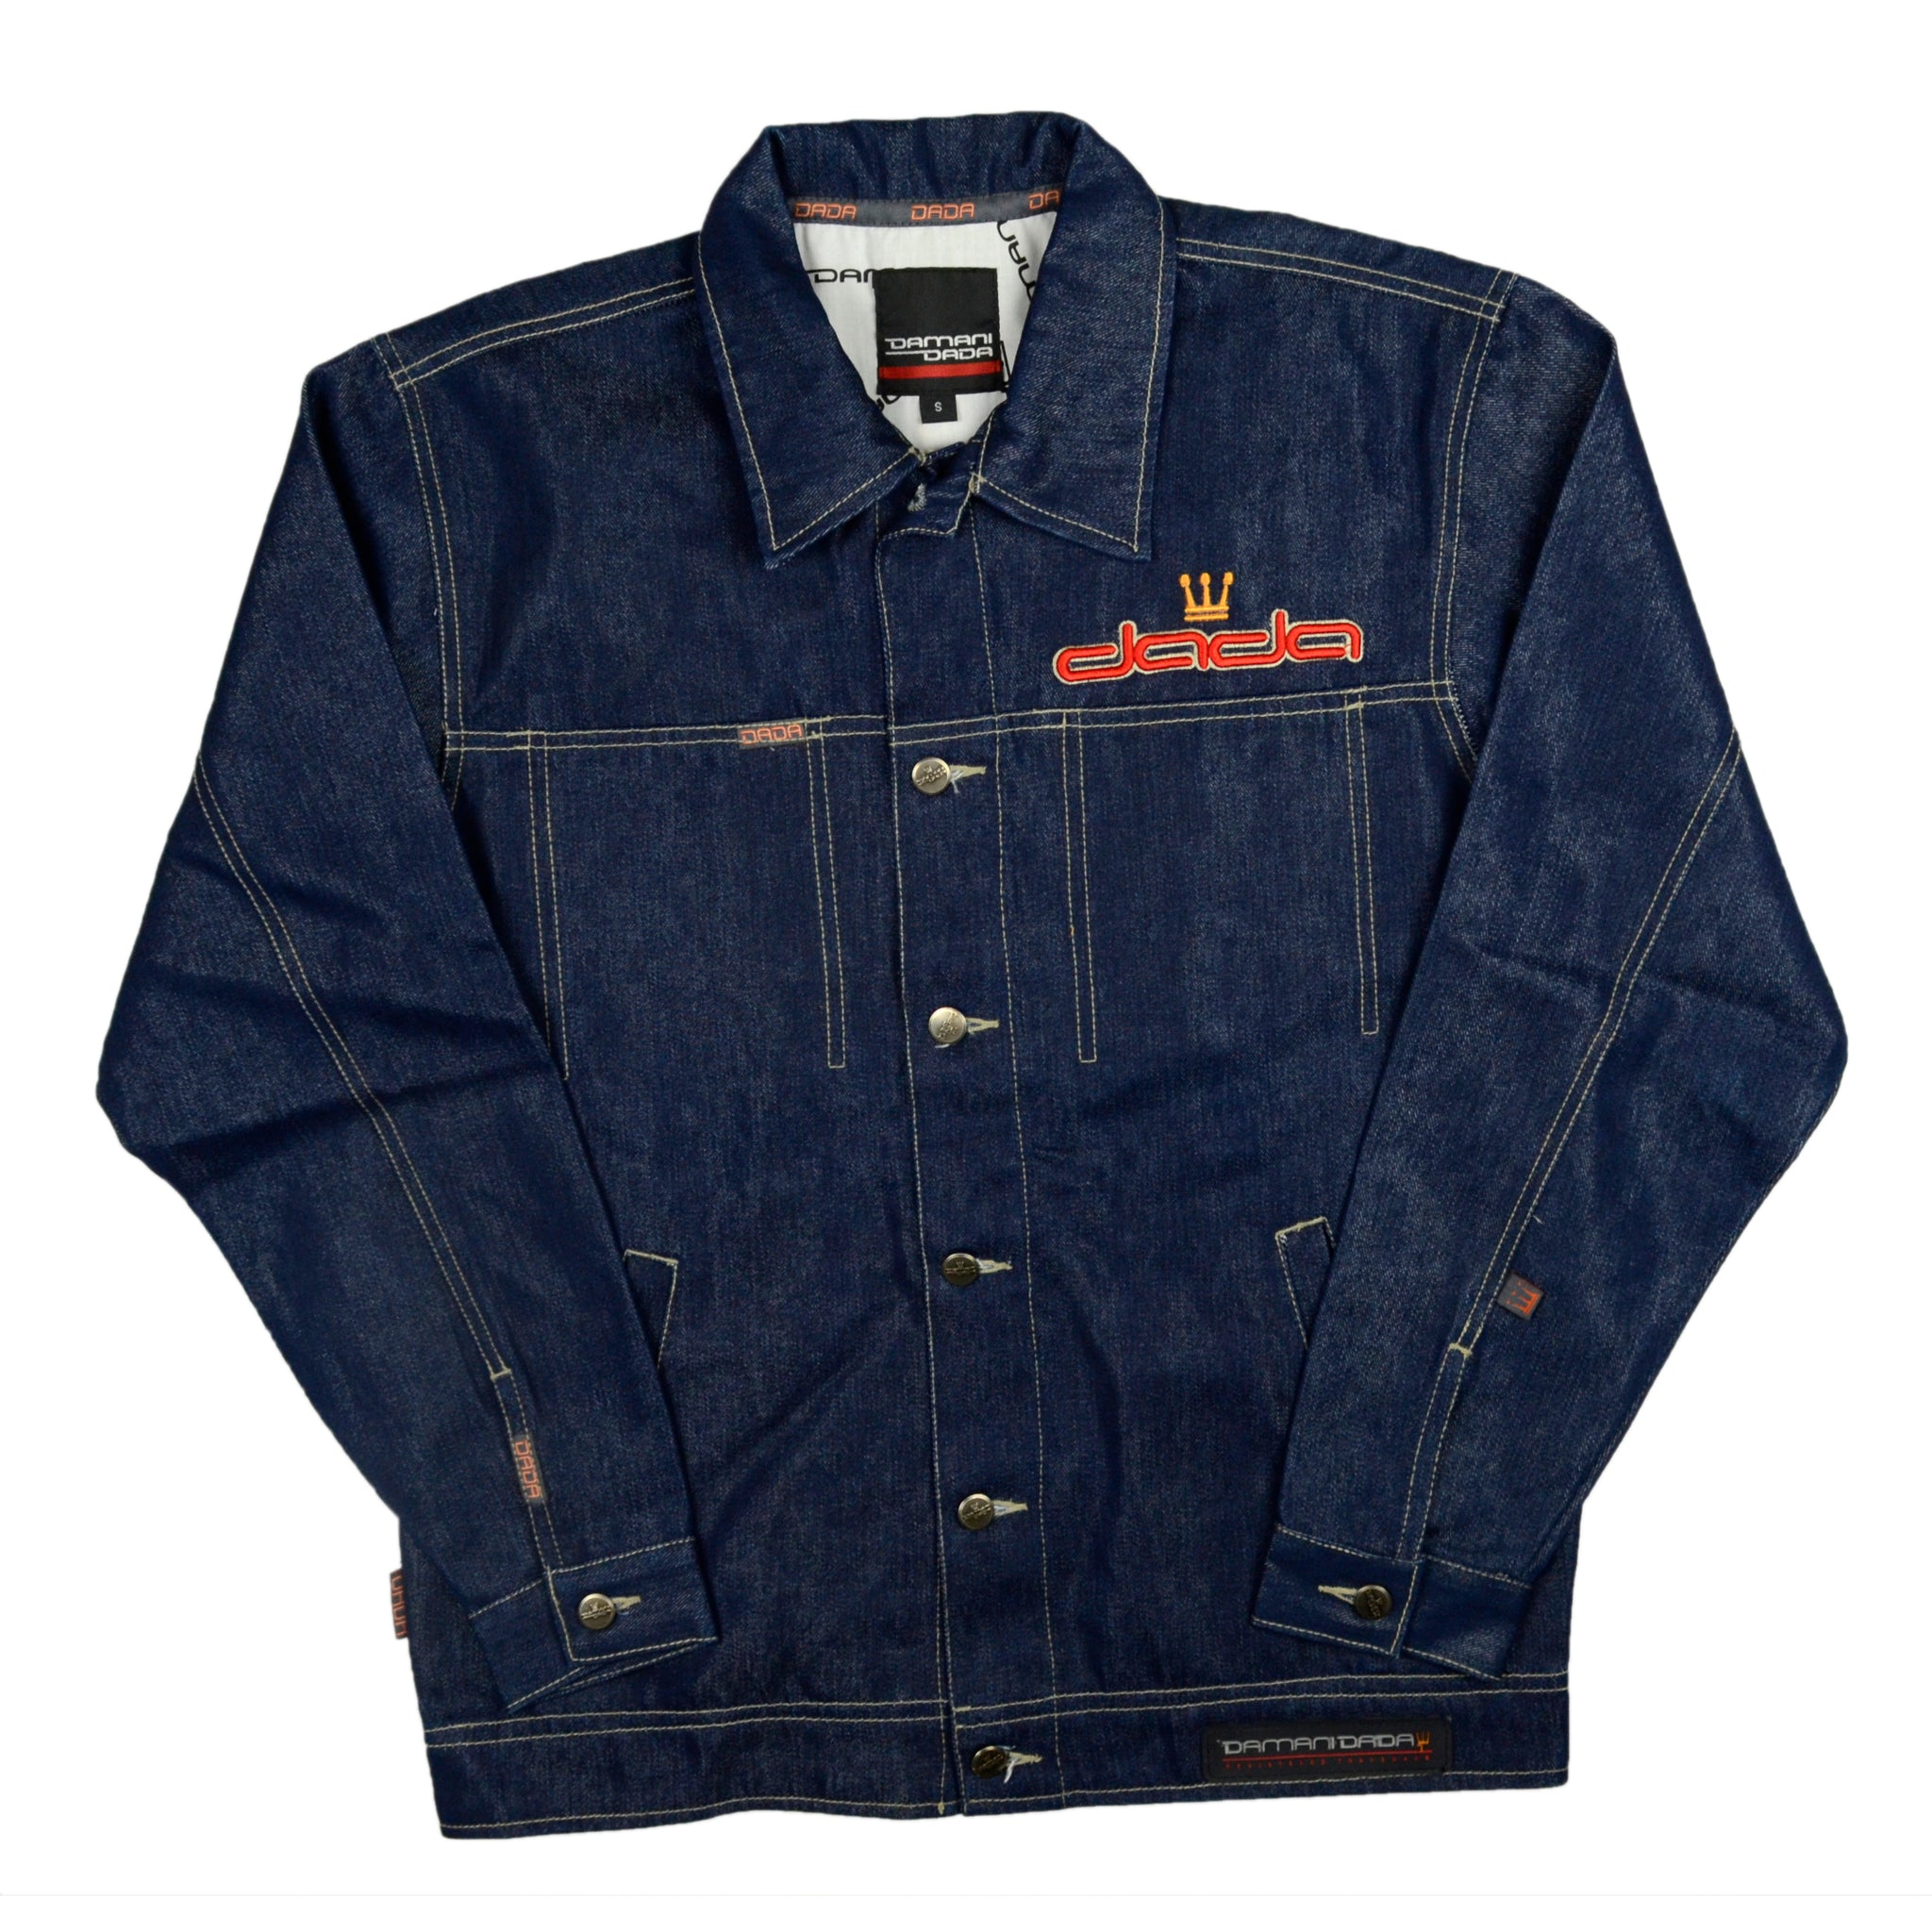 Vintage Dada Denim Jacket